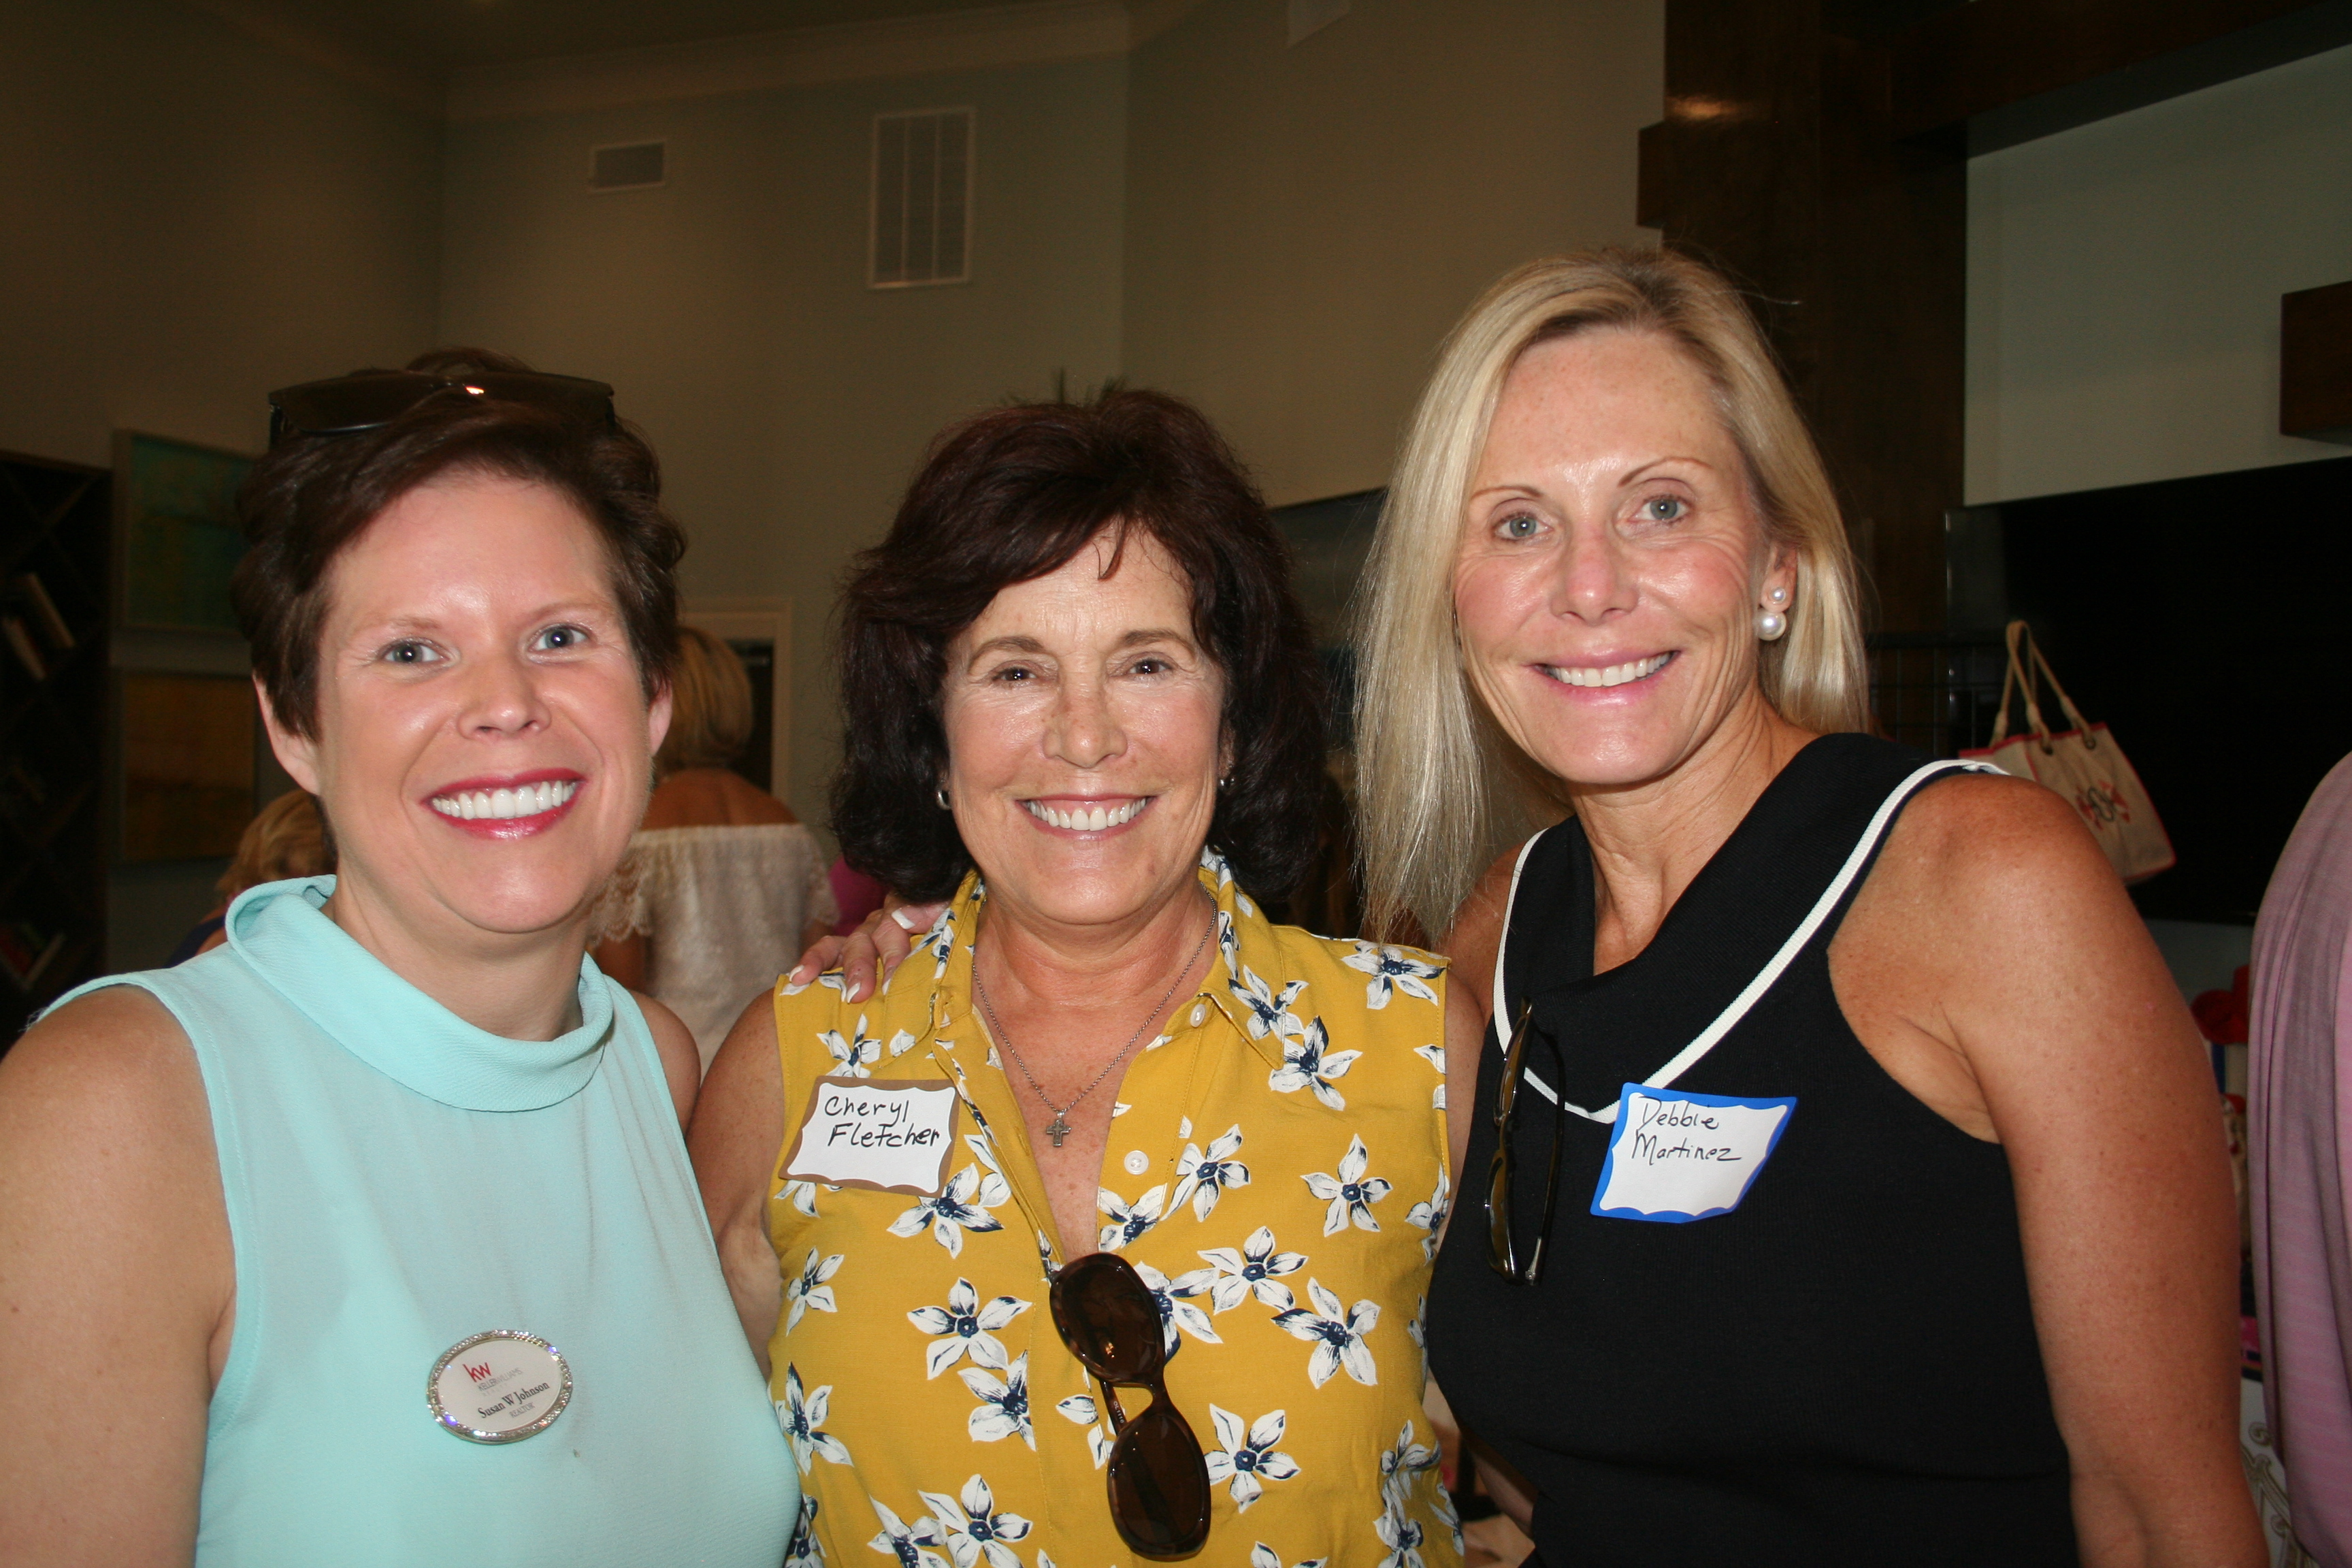 Local realtor Susan Johnson, and attorneys Cheryl Fletcher (former DIBA president) and Debbie Martinez touch base at the block party.